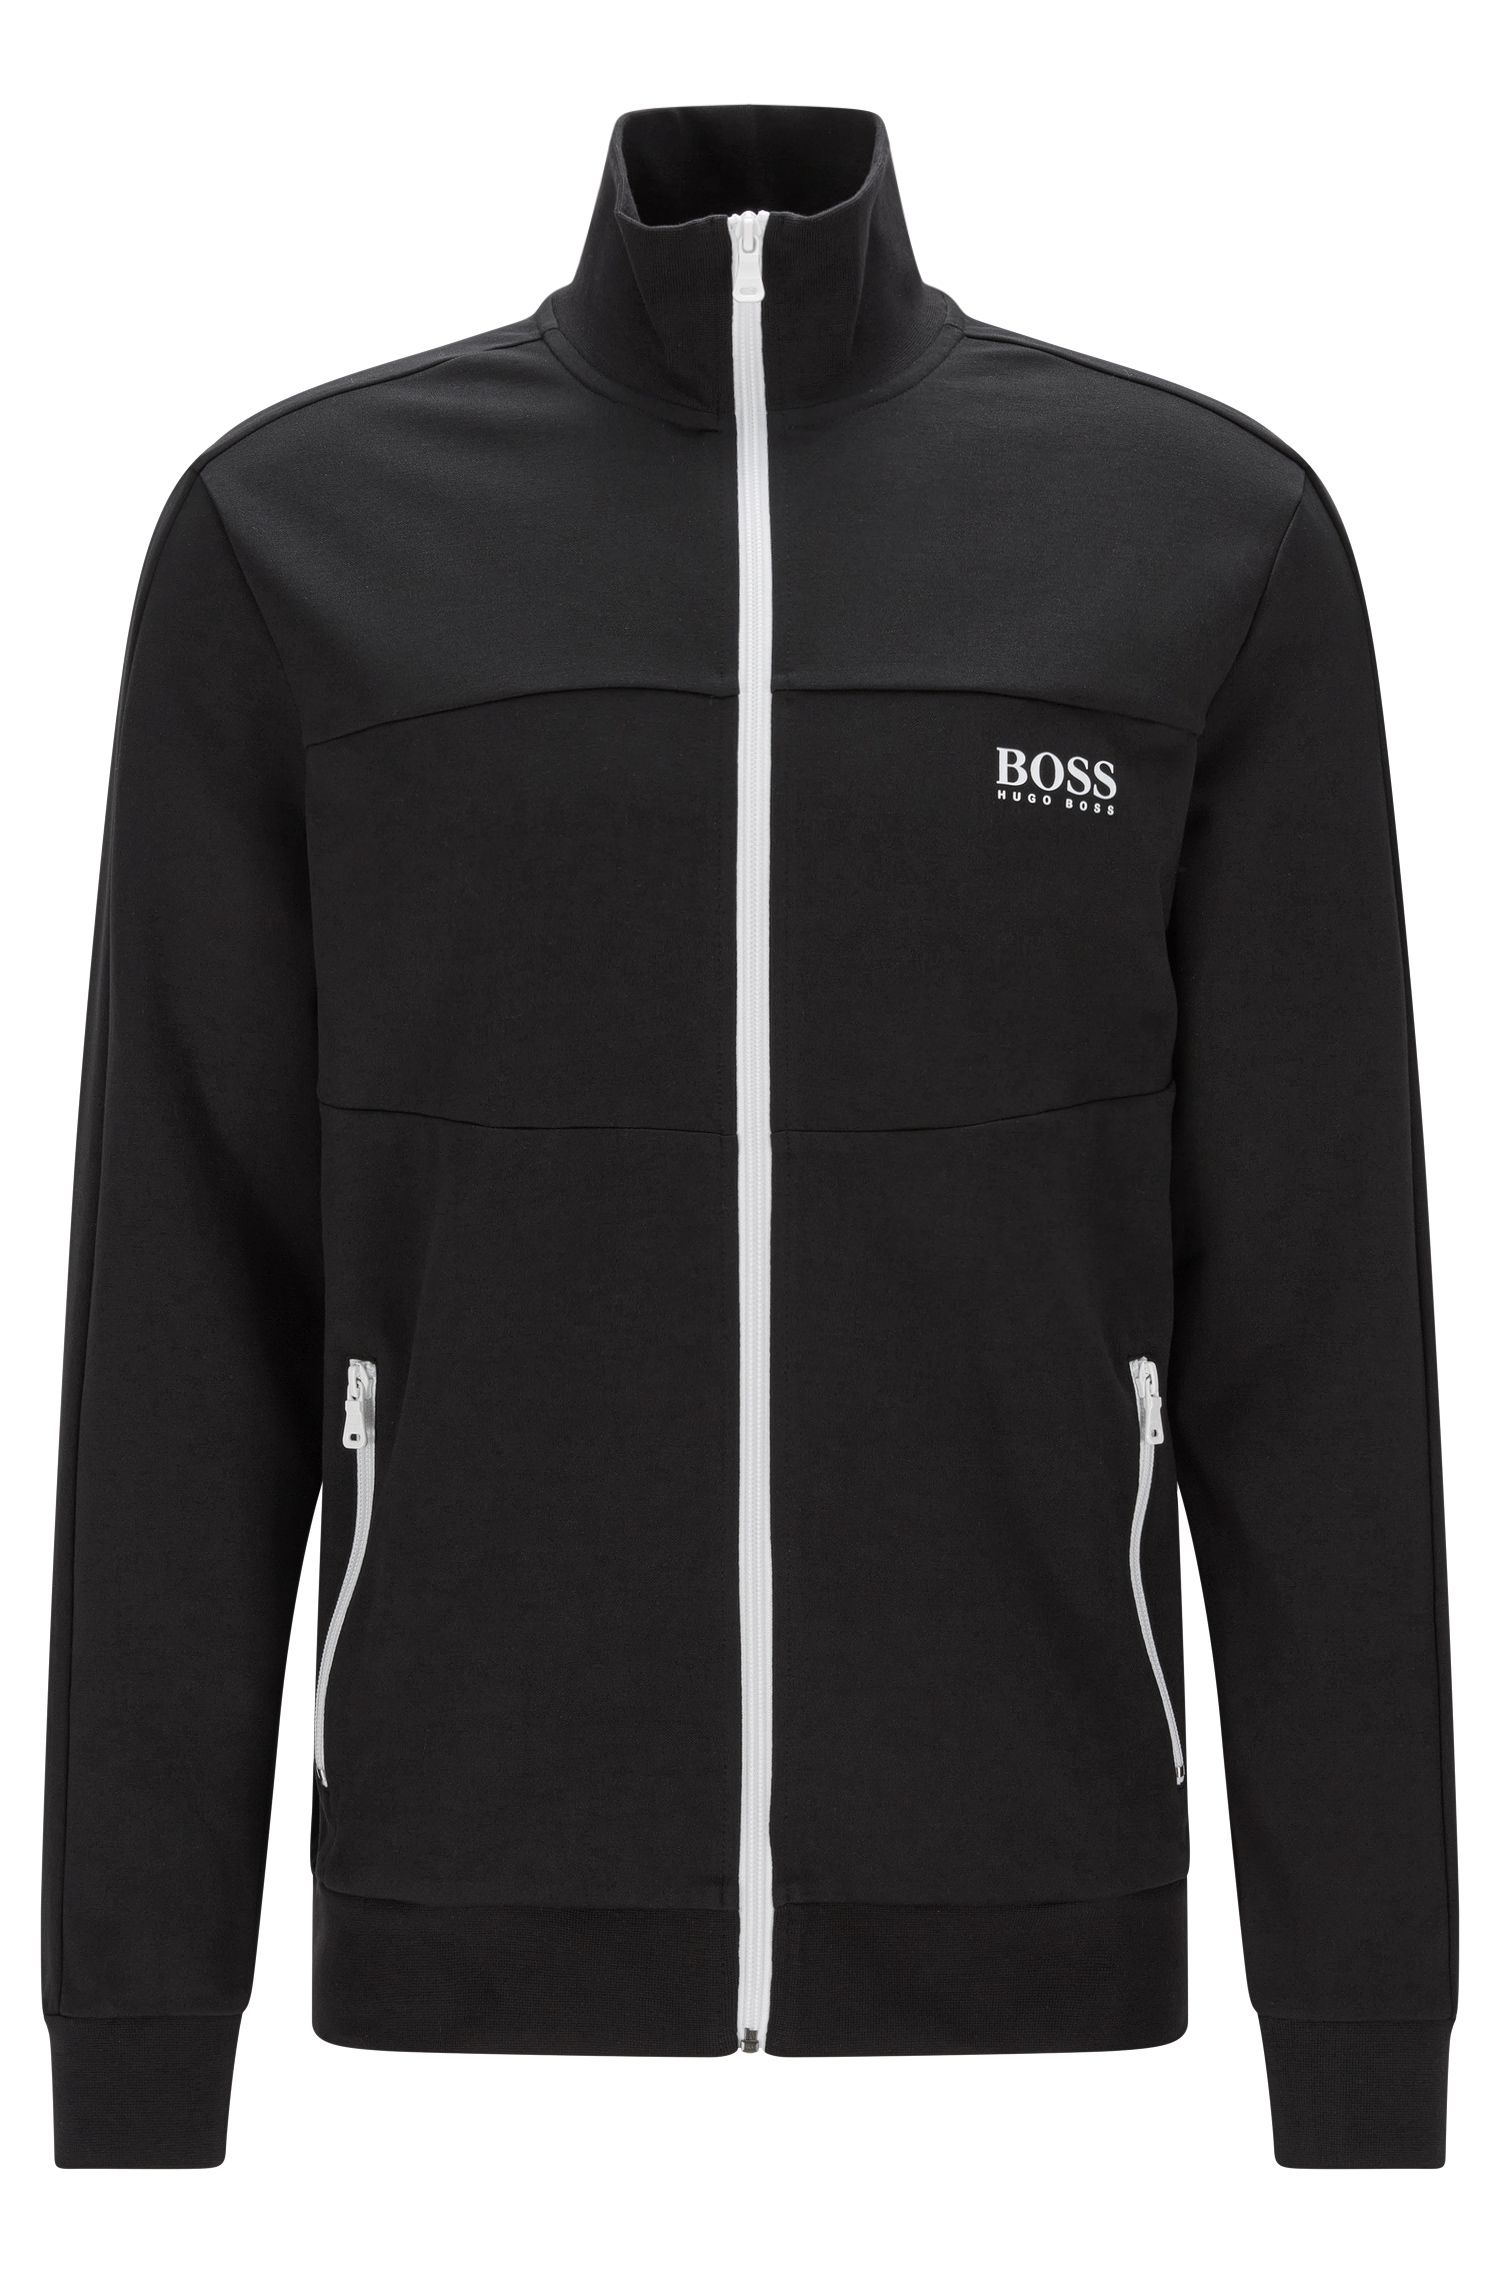 Regular-fit sweatshirt jacket in a cotton blend: 'Jacket Zip'